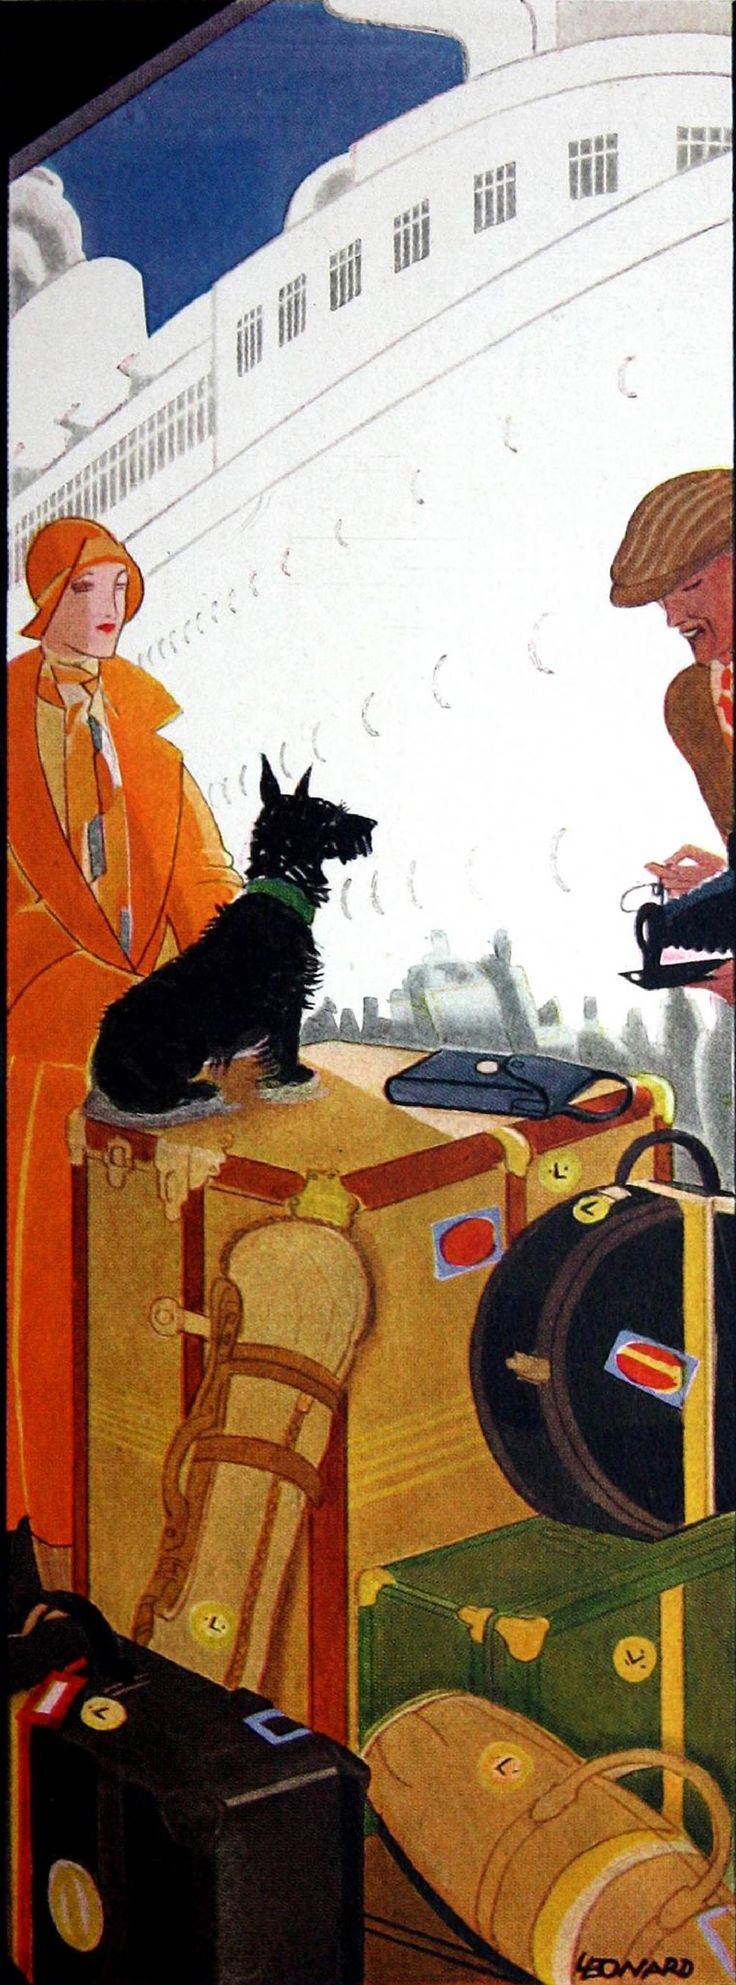 Vintage Art Deco Illustration